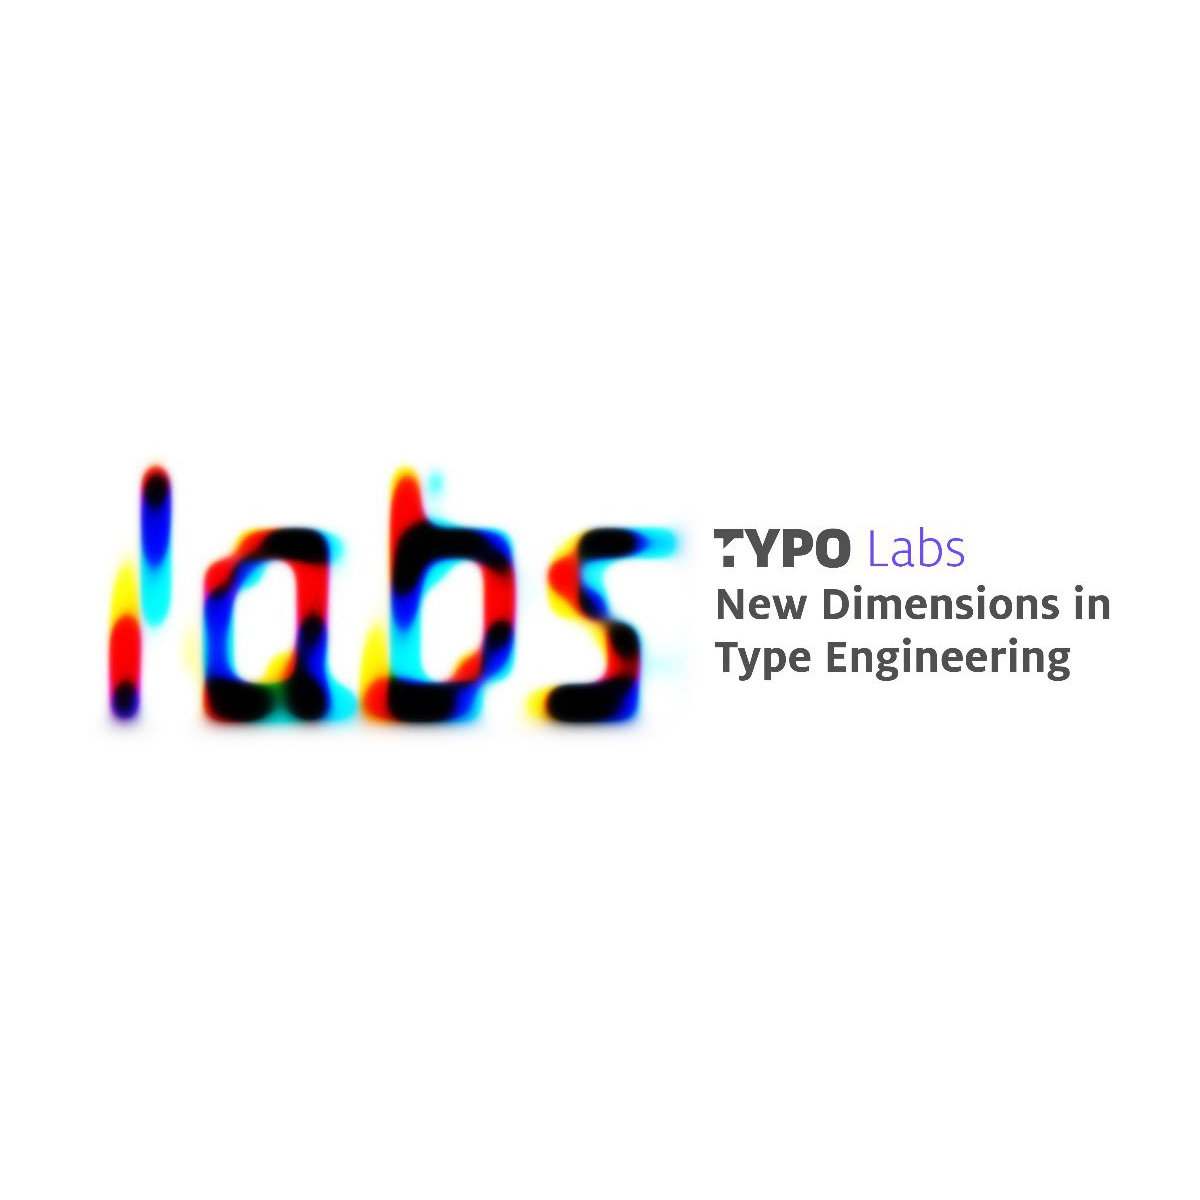 TYPO Labs 2017 - New Dimensions in Type Engineering